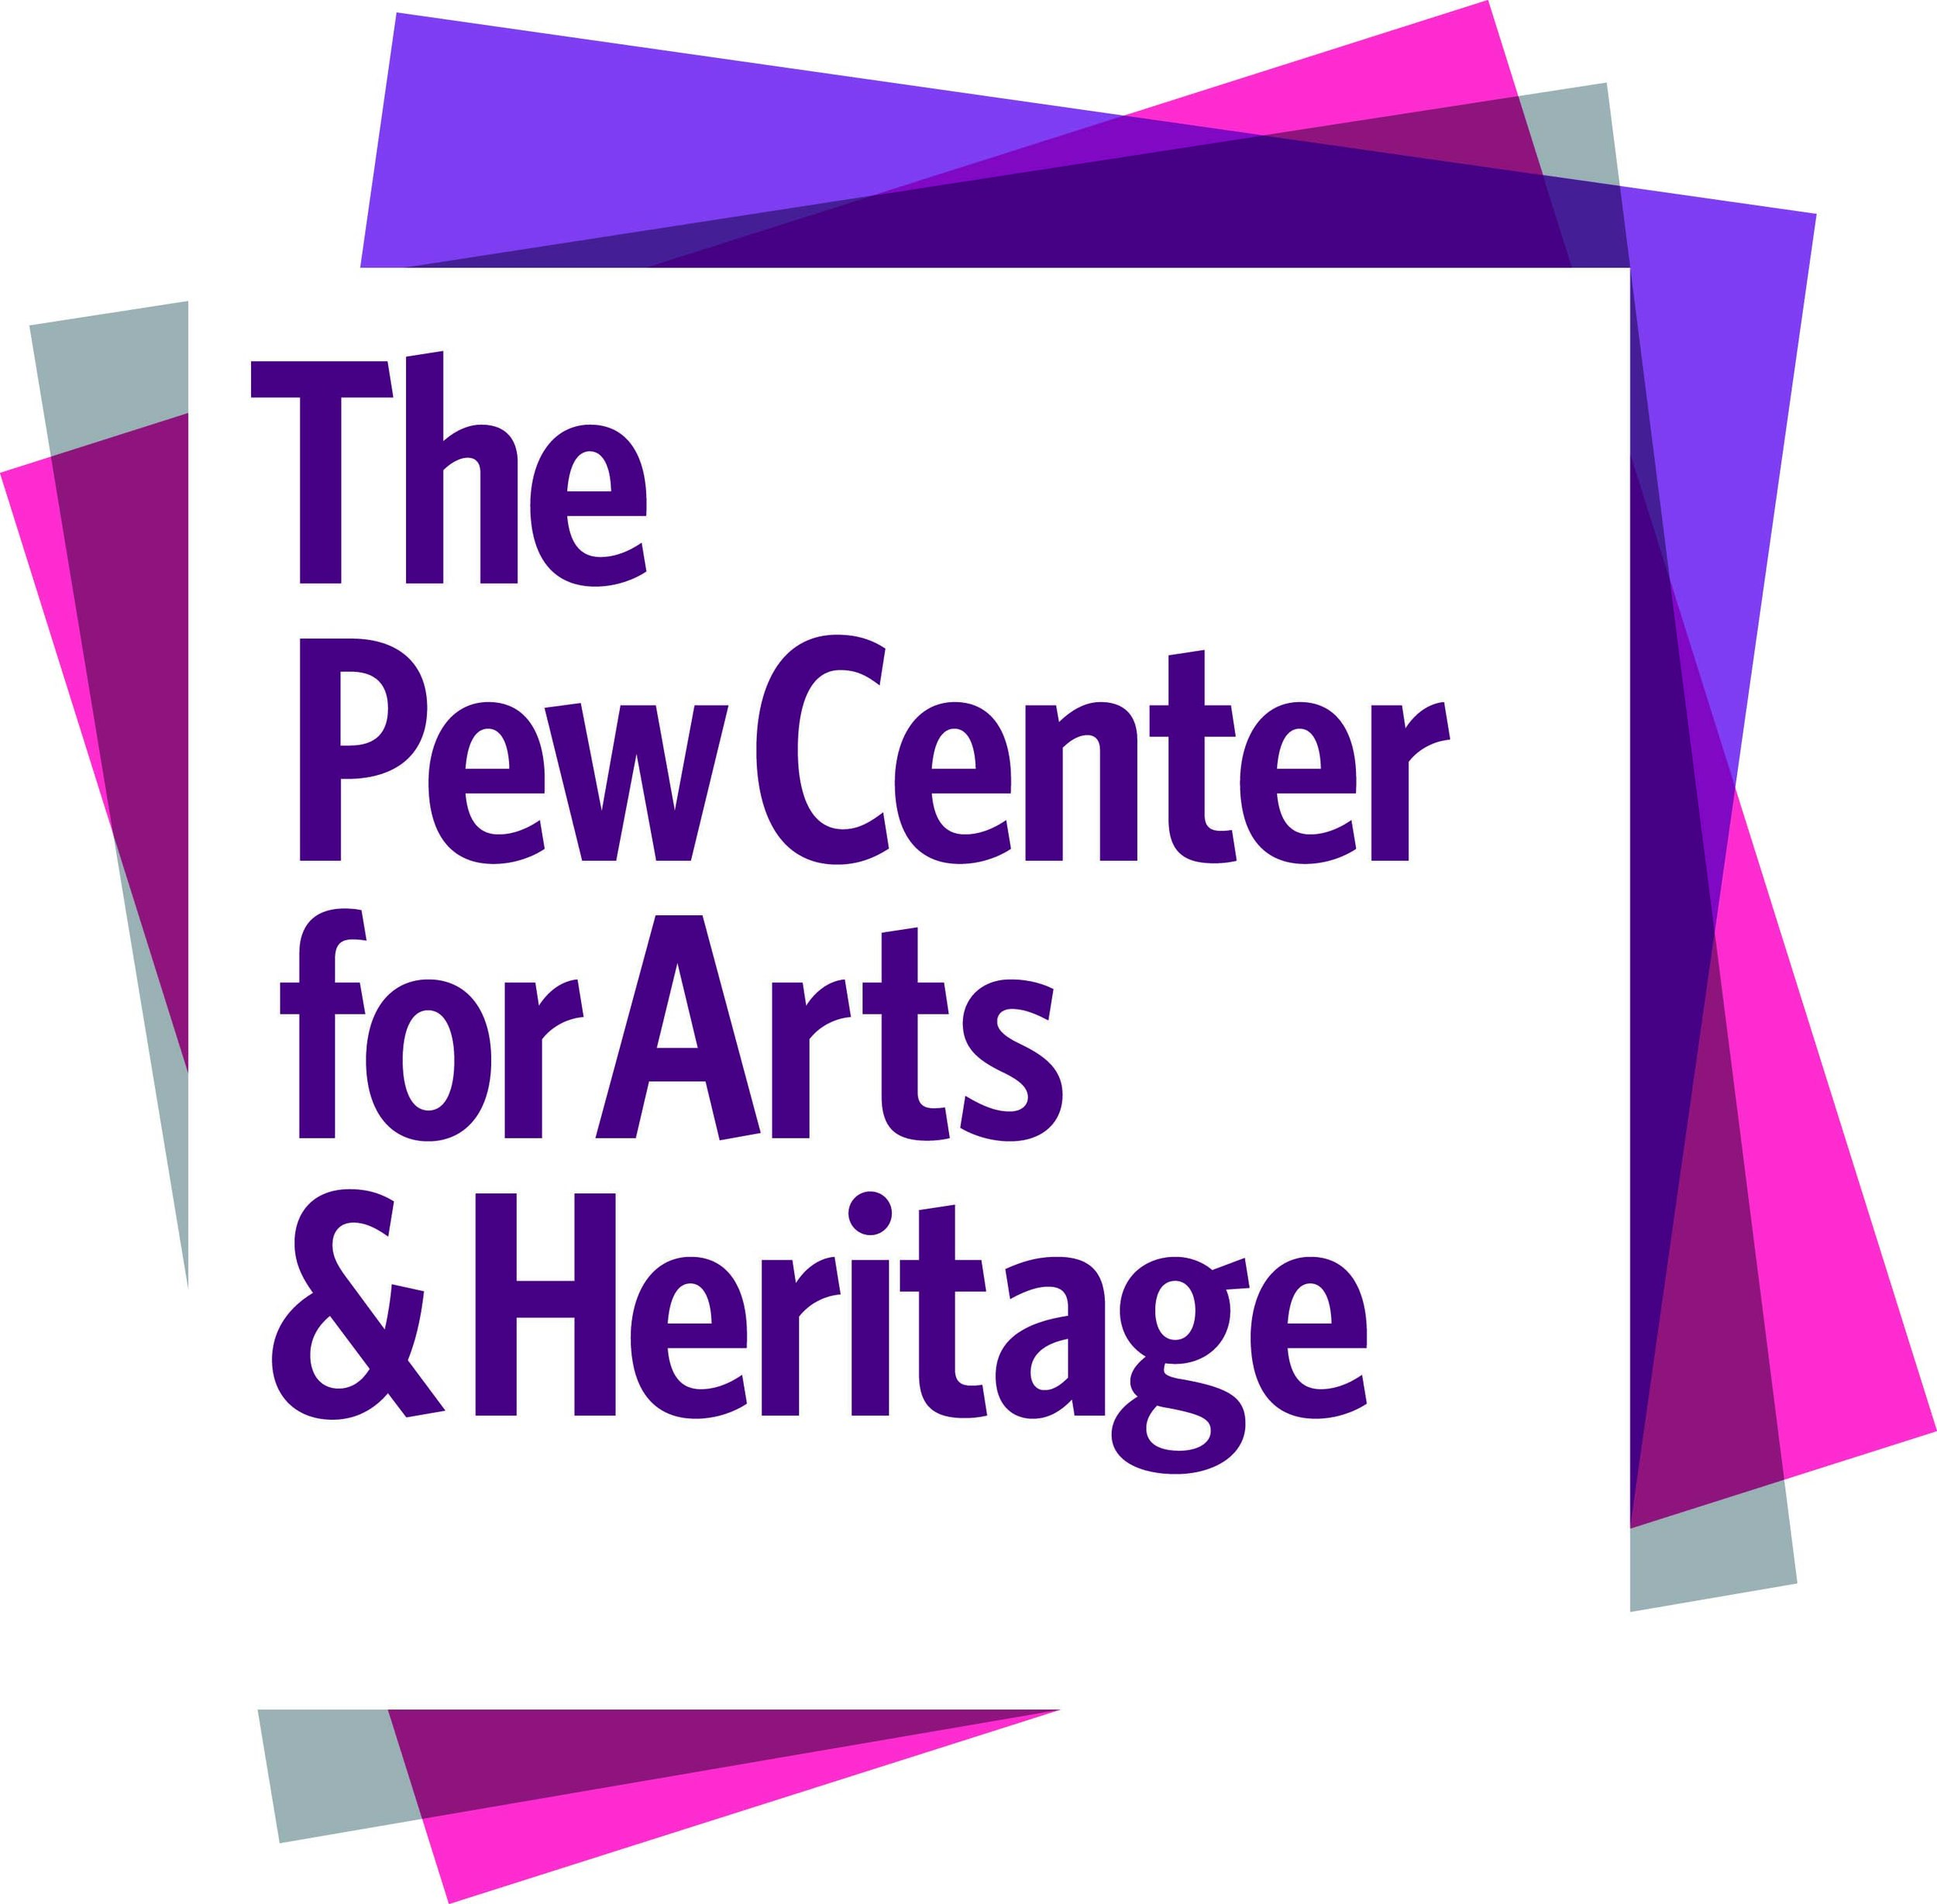 - Major support for the project has been provided by The Pew Center for Arts & Heritage.